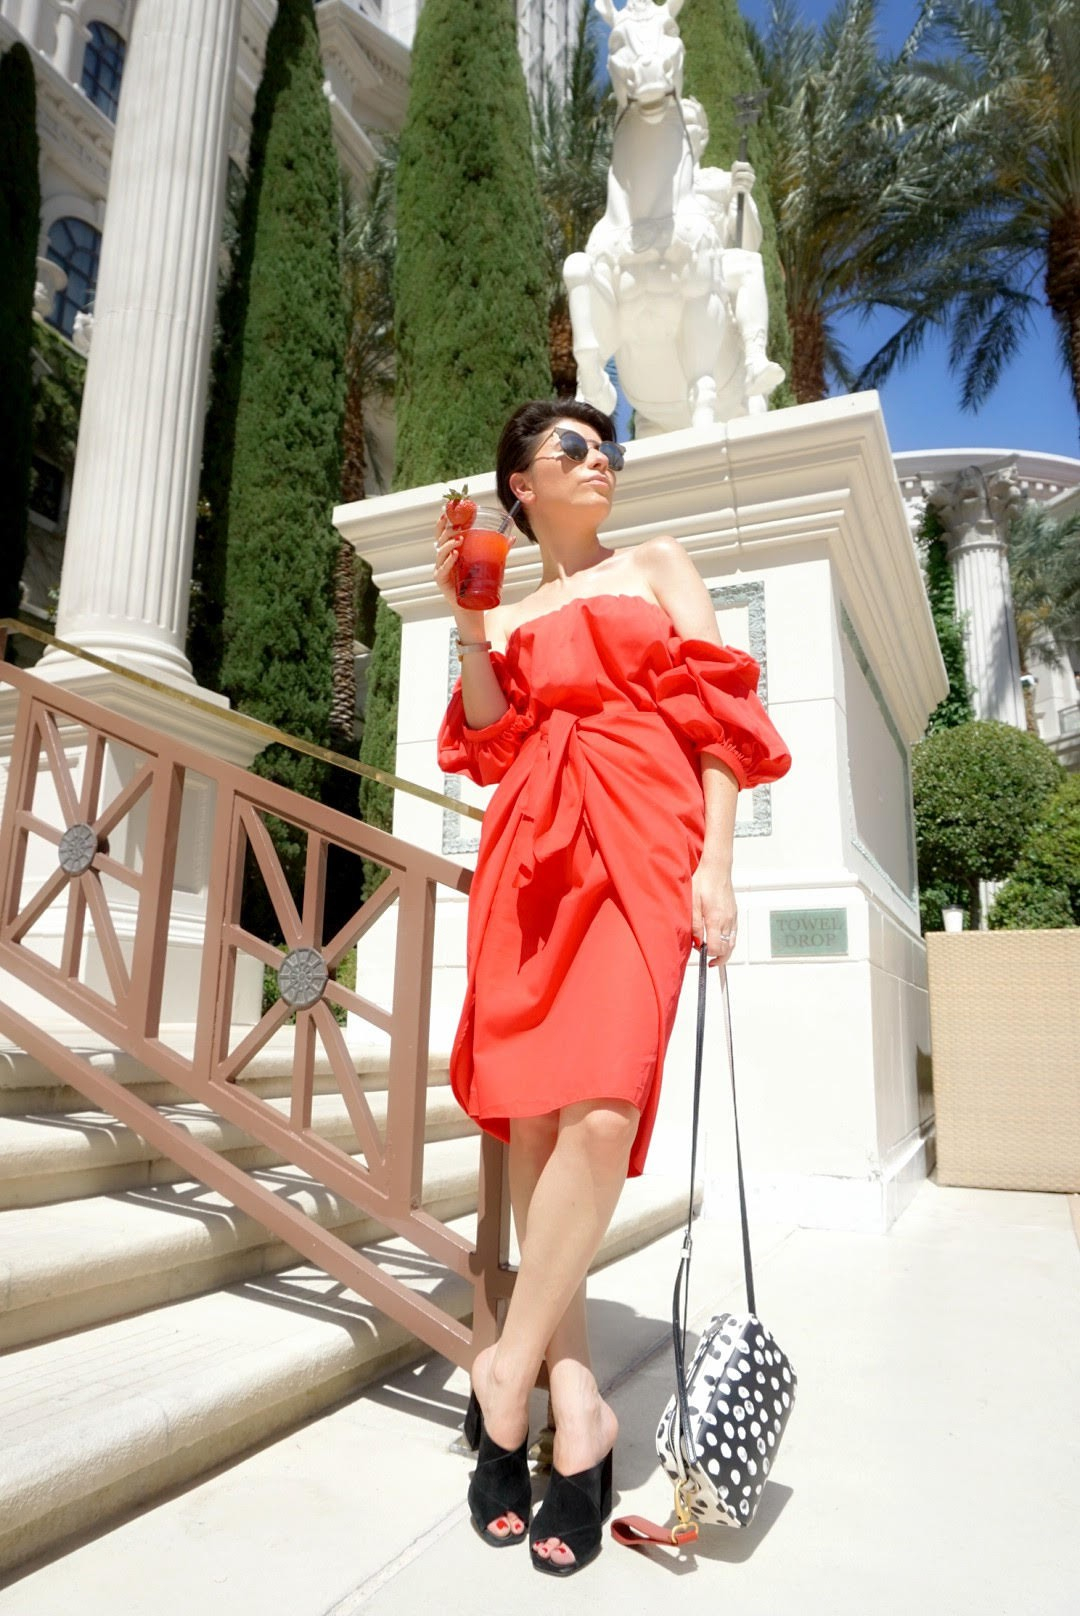 MoodyRooza_best_Journalist_for_FabulousMuses_best_FashionIcon(8)